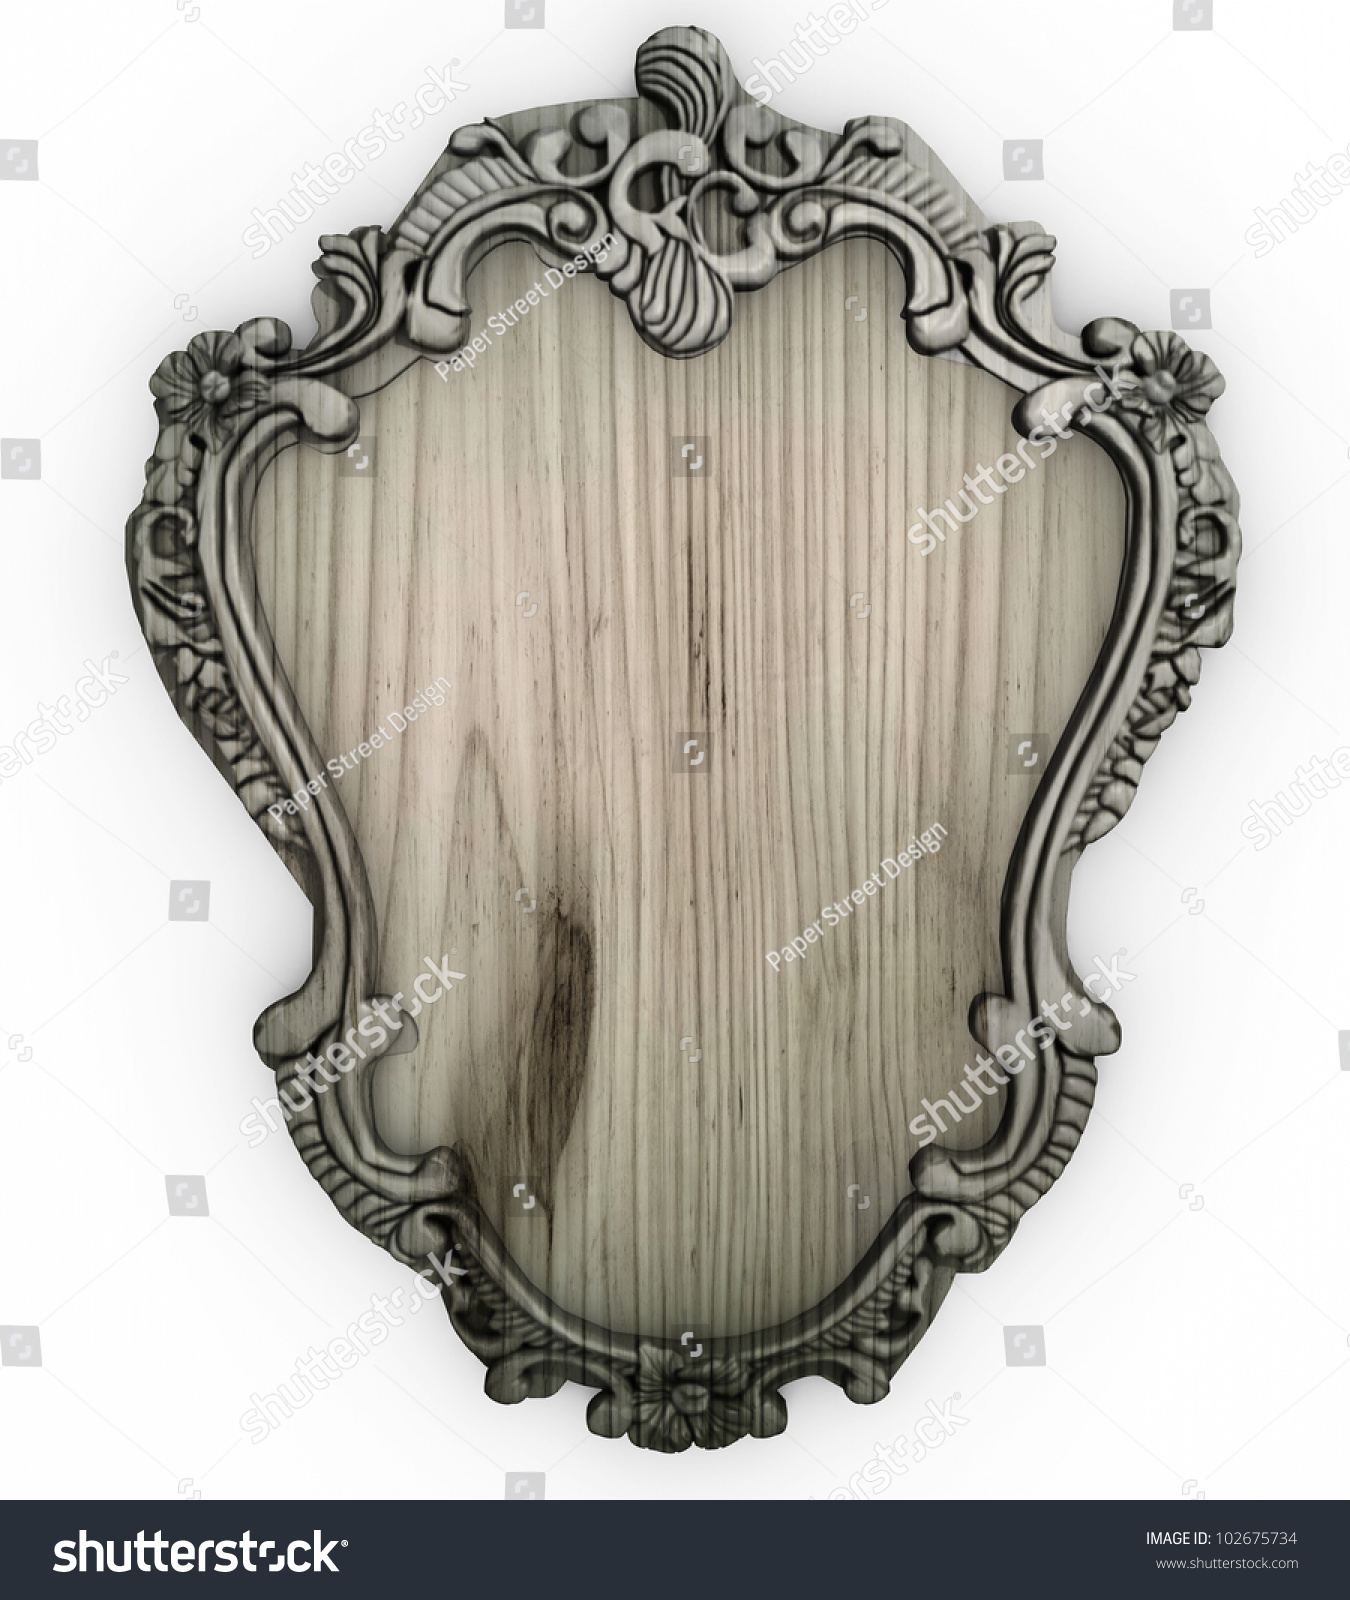 isolated white wooden ornate frame with backing board